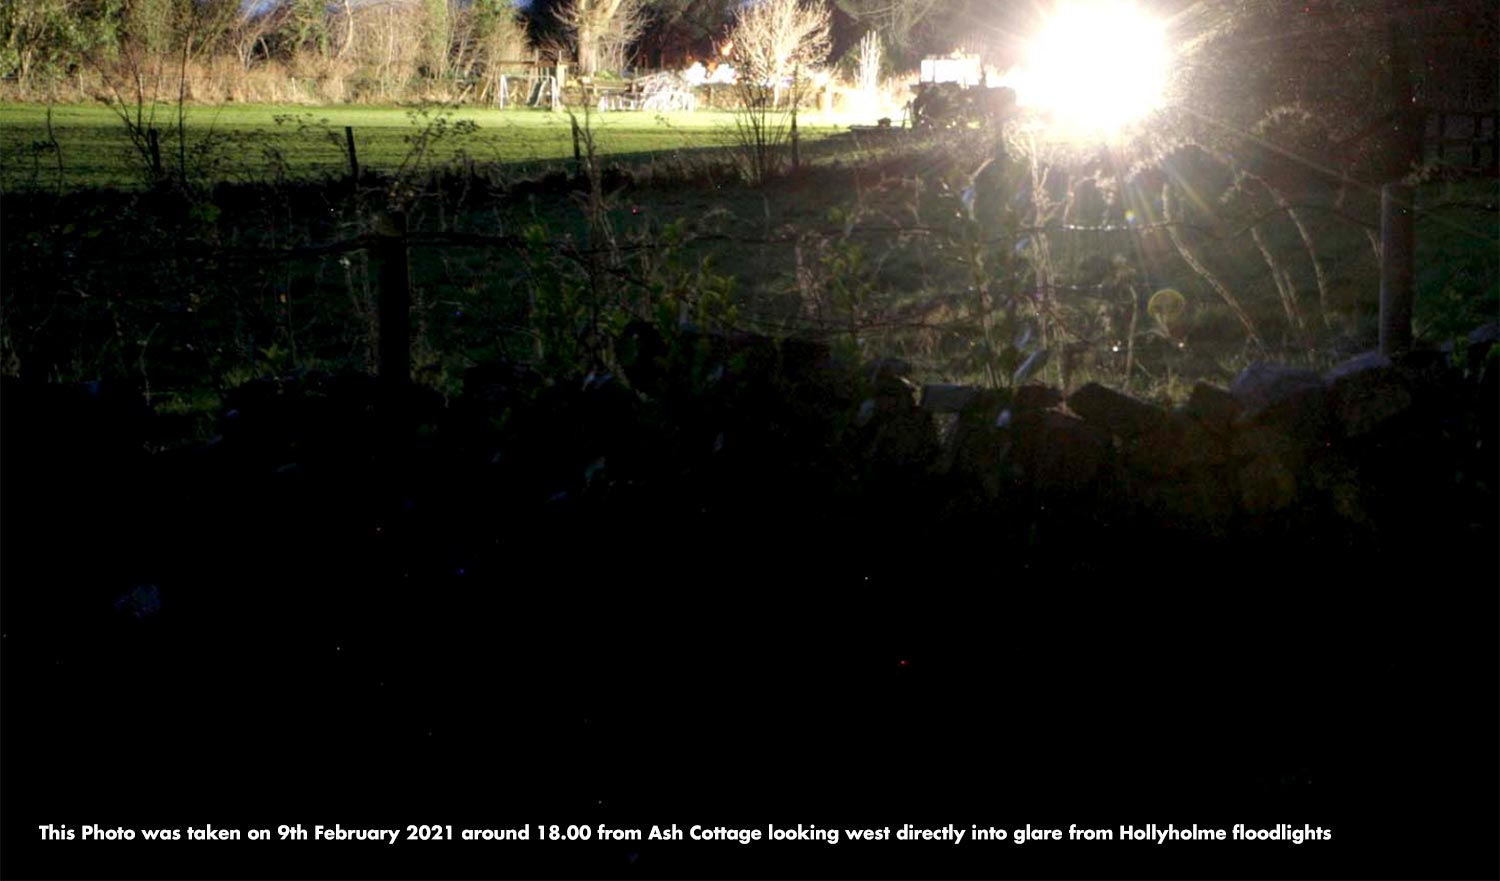 View from Ash Cottage looking west directly into glare from Hollyholme floodlights